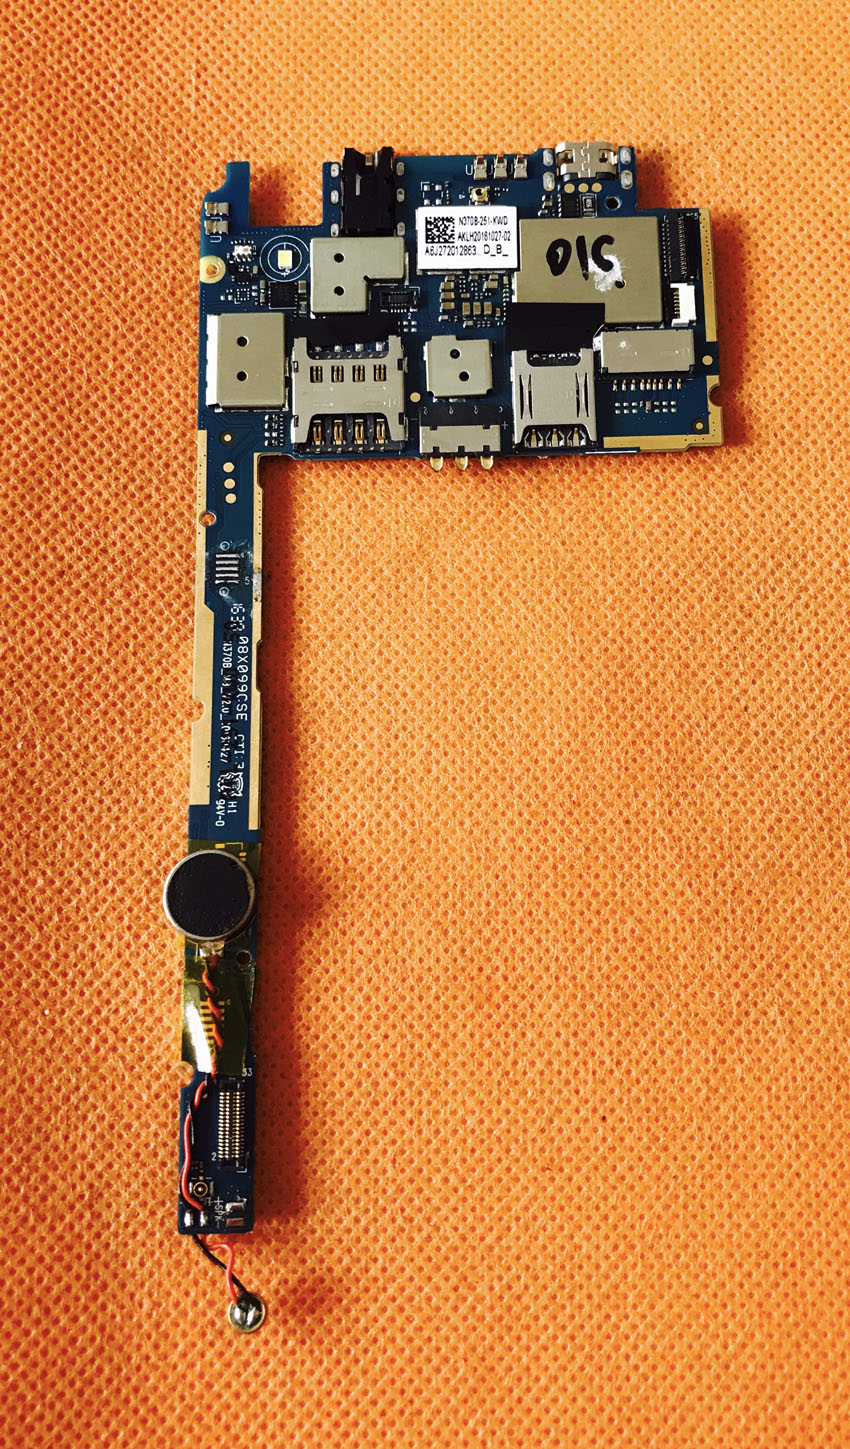 Used Original mainboard 2G RAM+16G ROM Motherboard for Doogee X5 Max pro  MTK6737 Quad Core Free shipping